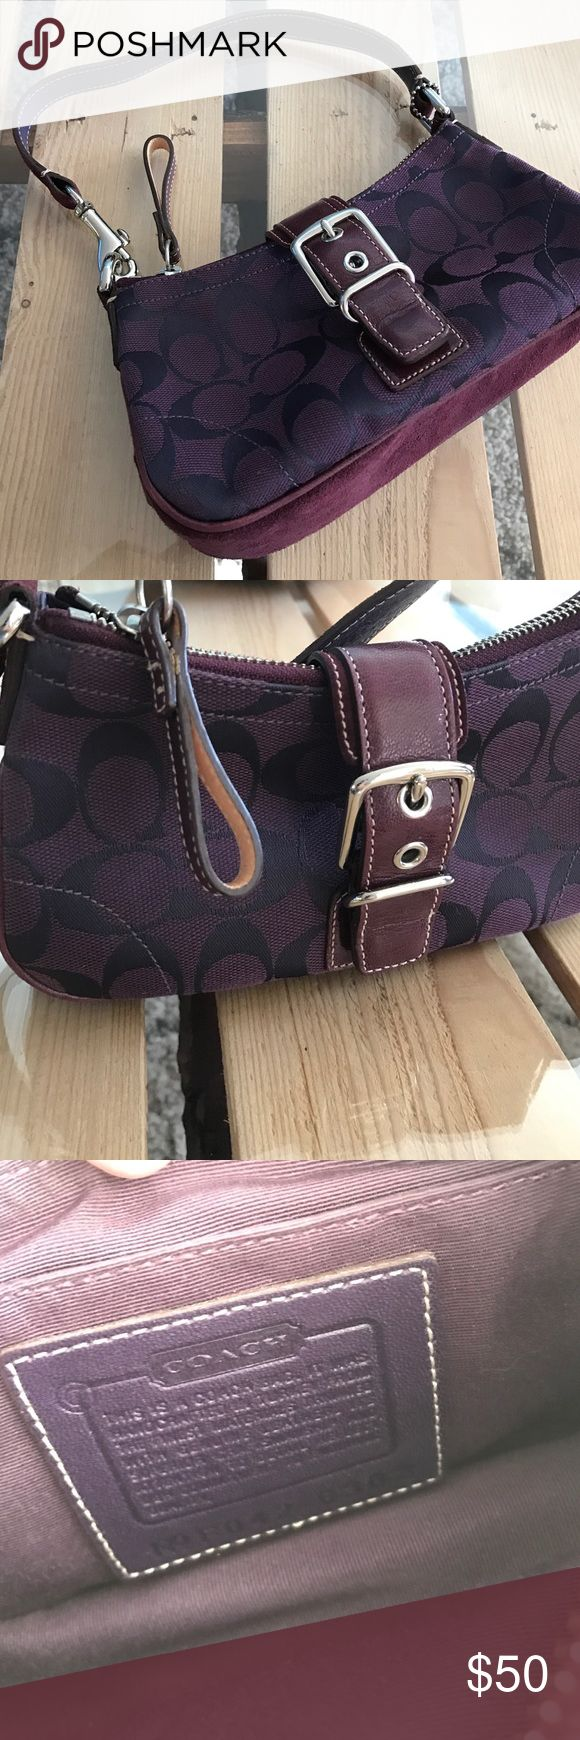 Coach Bag Mint condition purple, suede authentic Coach bag. Holds a special place in my heart since it was my very first designer bag ❤️ beautiful eggplant color with no imperfections. Comes with duster for storing. Beautiful for a fall wardrobe! Smoke free / pet free home. Fast shipping! 📦 Coach Bags Mini Bags